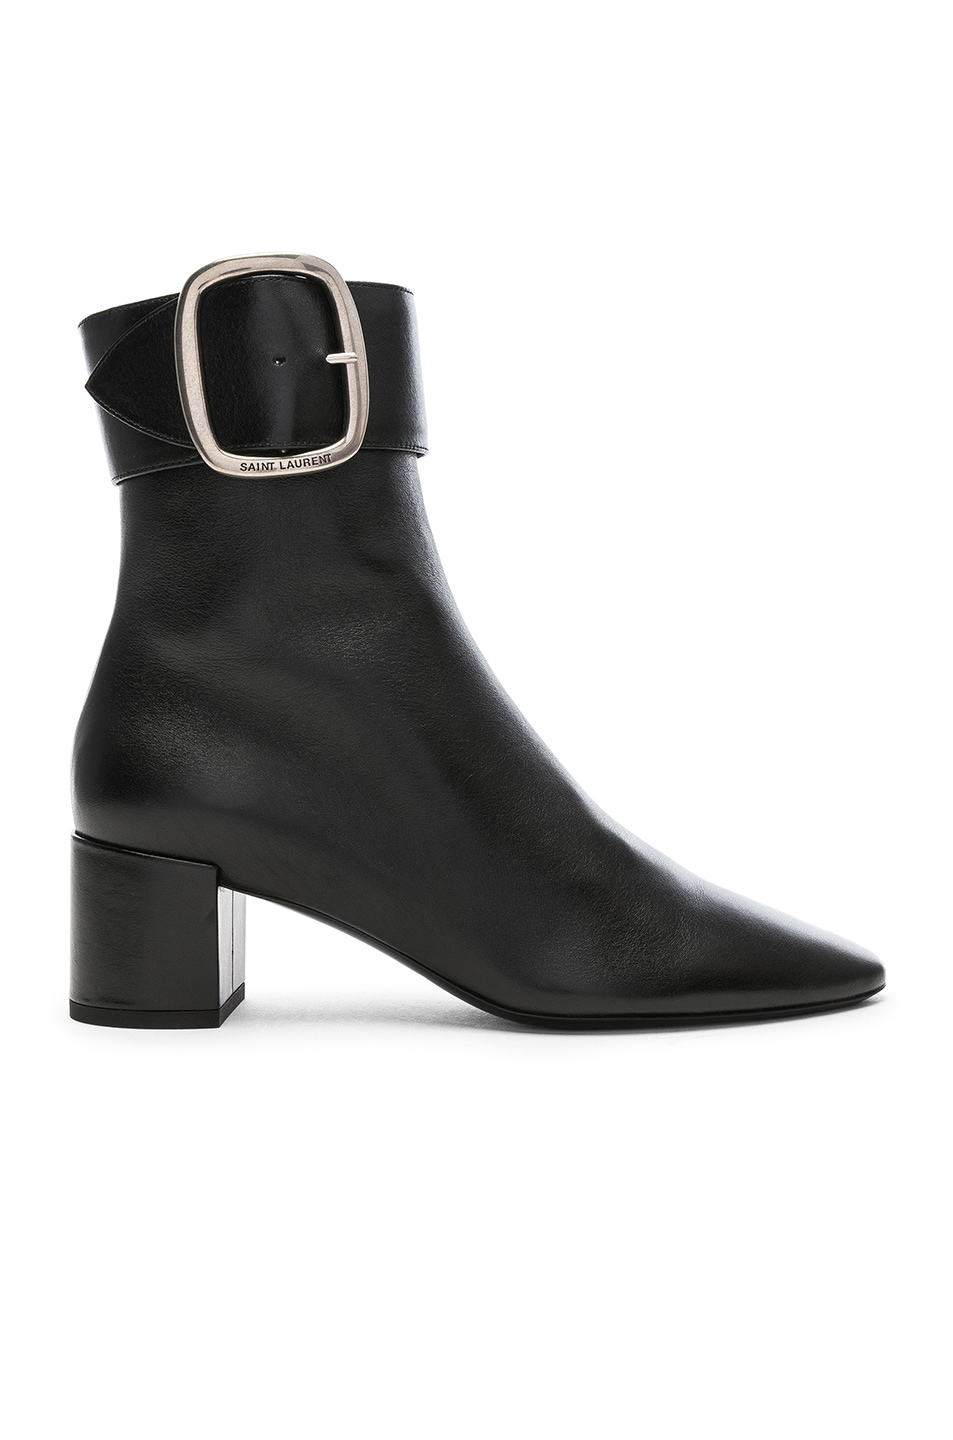 Image 1 of Saint Laurent Leather Joplin Buckle Ankle Boots in Black